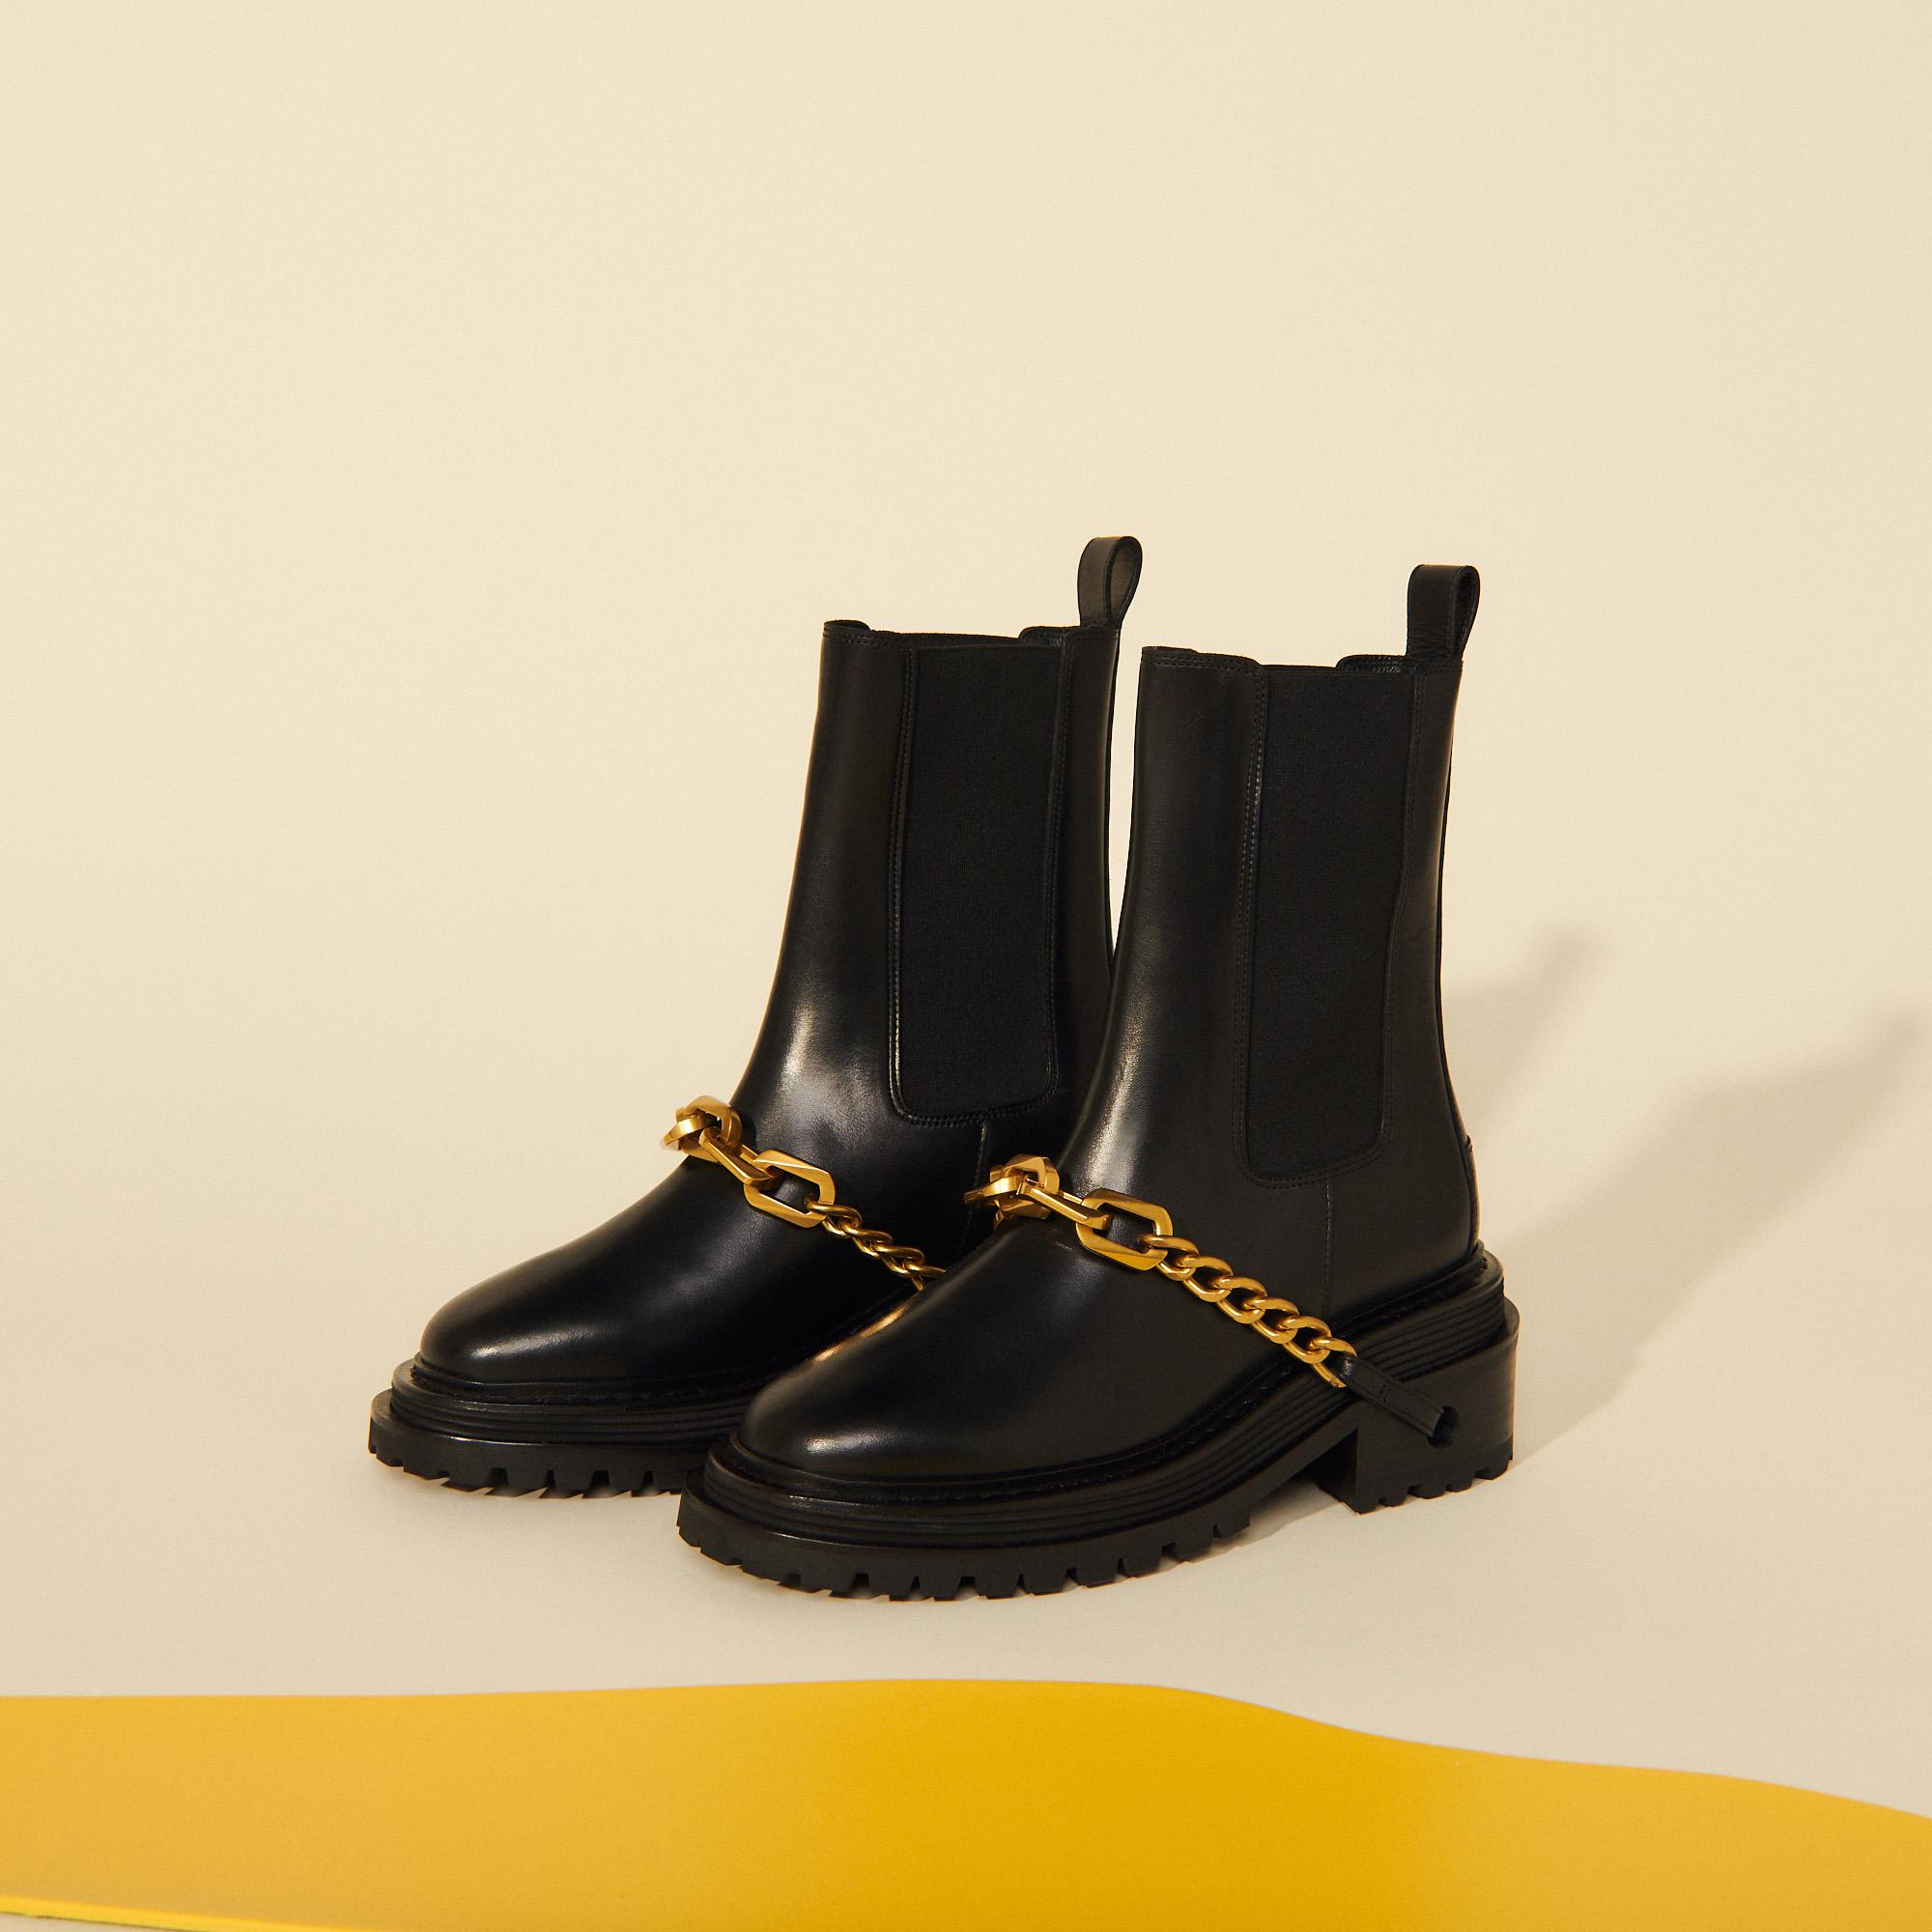 Ankle boots with notched sole and chain